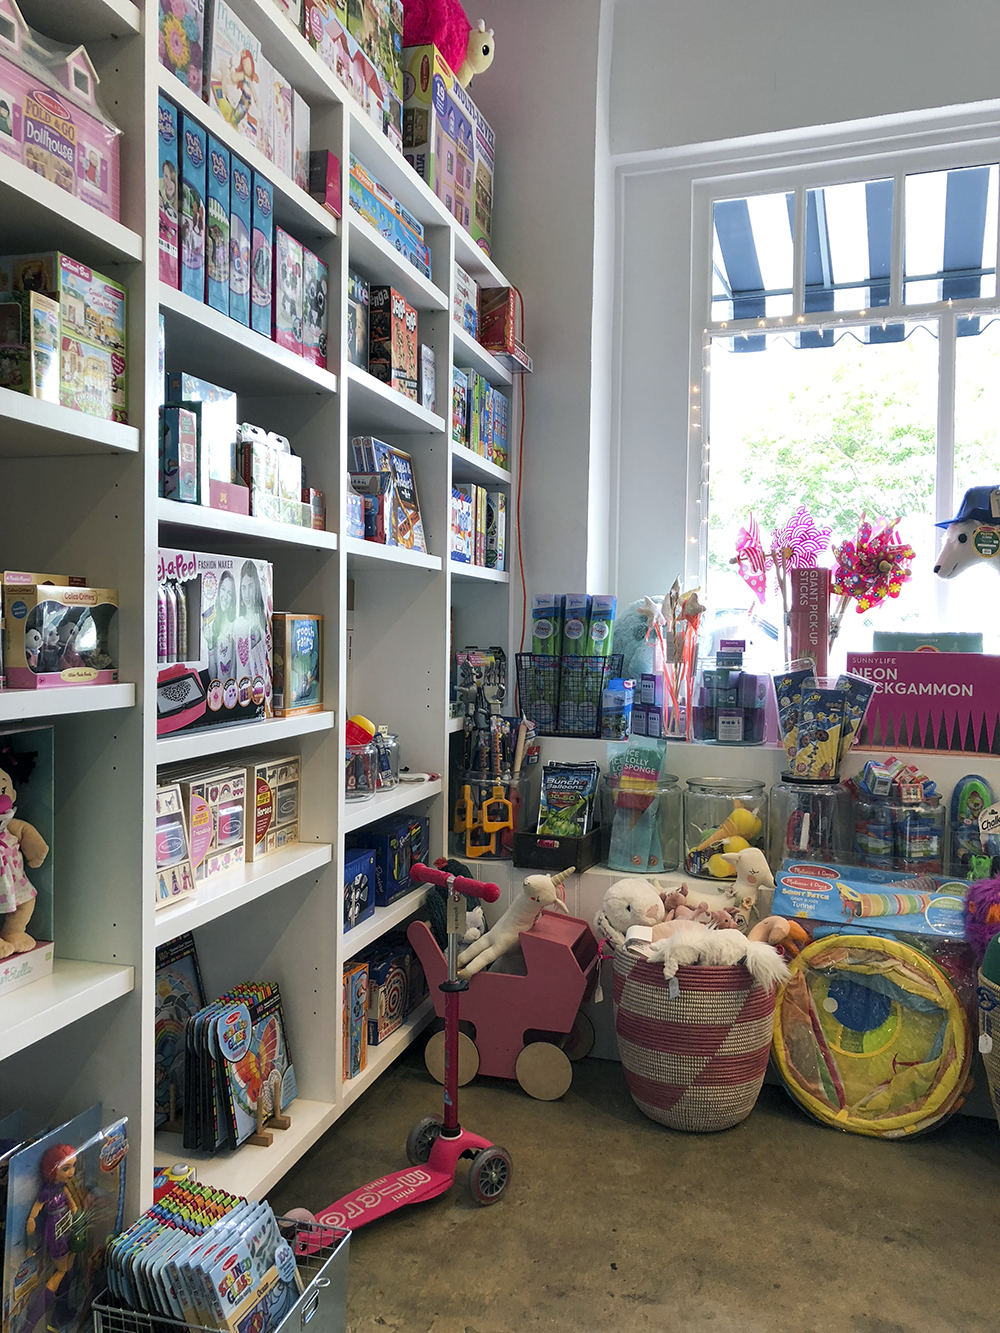 quinnie b a tiny but memorable toy shop in santa monica babyccino kids daily tips children. Black Bedroom Furniture Sets. Home Design Ideas